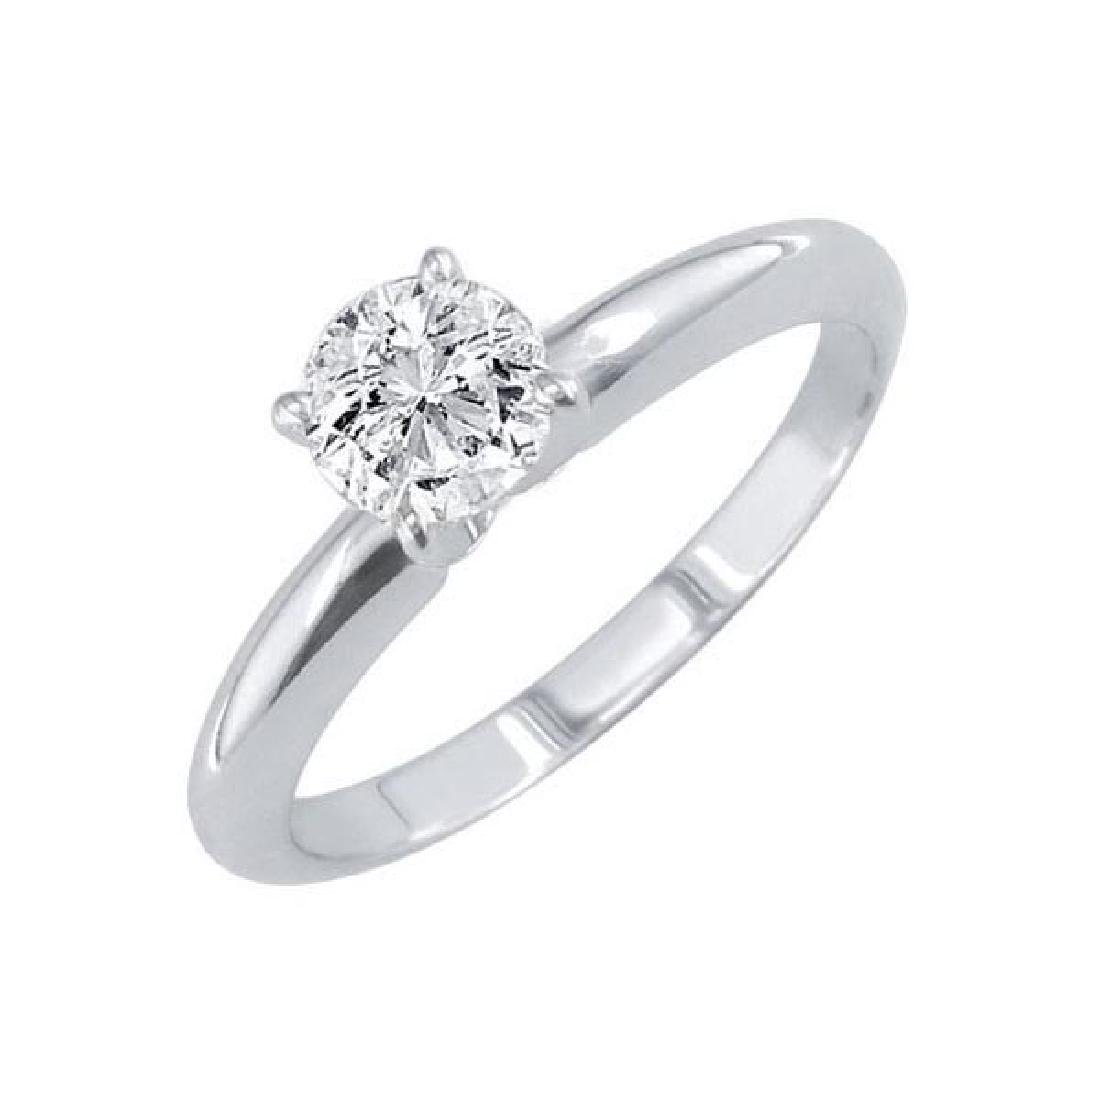 Certified 0.7 CTW Round Diamond Solitaire 14k Ring G/SI